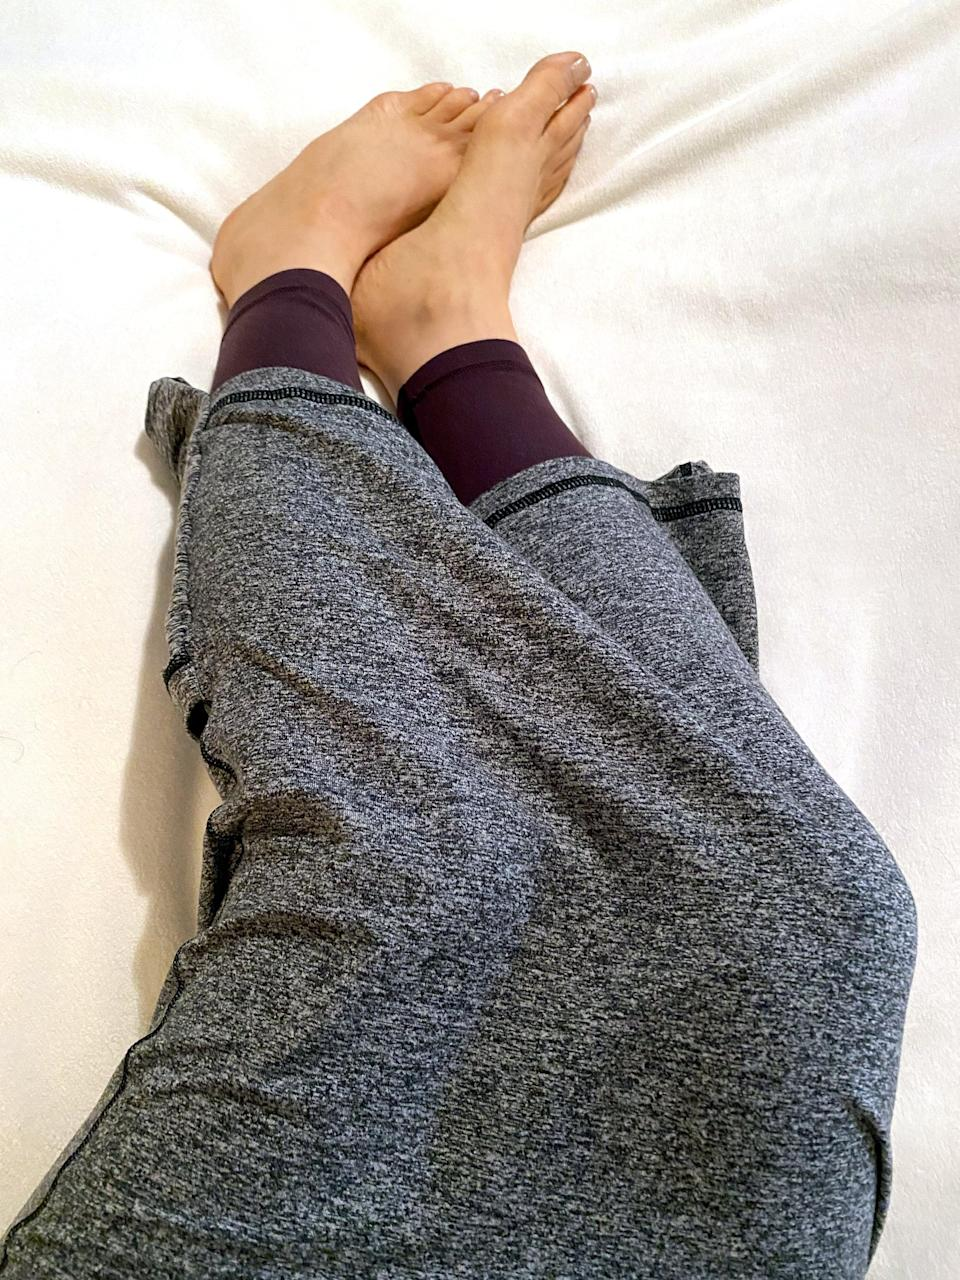 <p>If you're the type of sleeper who loves feeling super cozy in PJS under a blanket, you'll love the Hug Sleep Pod. It just feels so nice to be hugged by this stretchy fabric; it feels like a form of self-care. And coupled with the self-care of getting enough sleep, this is one of the best products for supporting self-care I've ever used. </p> <p>I will say that if you share your bed with someone, wearing a Hug Sleep Pod Move doesn't exactly send the sexiest message. It could get in the way of intimacy because after you pull it on, and you feel instantly calm and sleepy, you won't want to pull it off! Your partner may not appreciate that, but that just may mean you need to order one for them, too!</p>